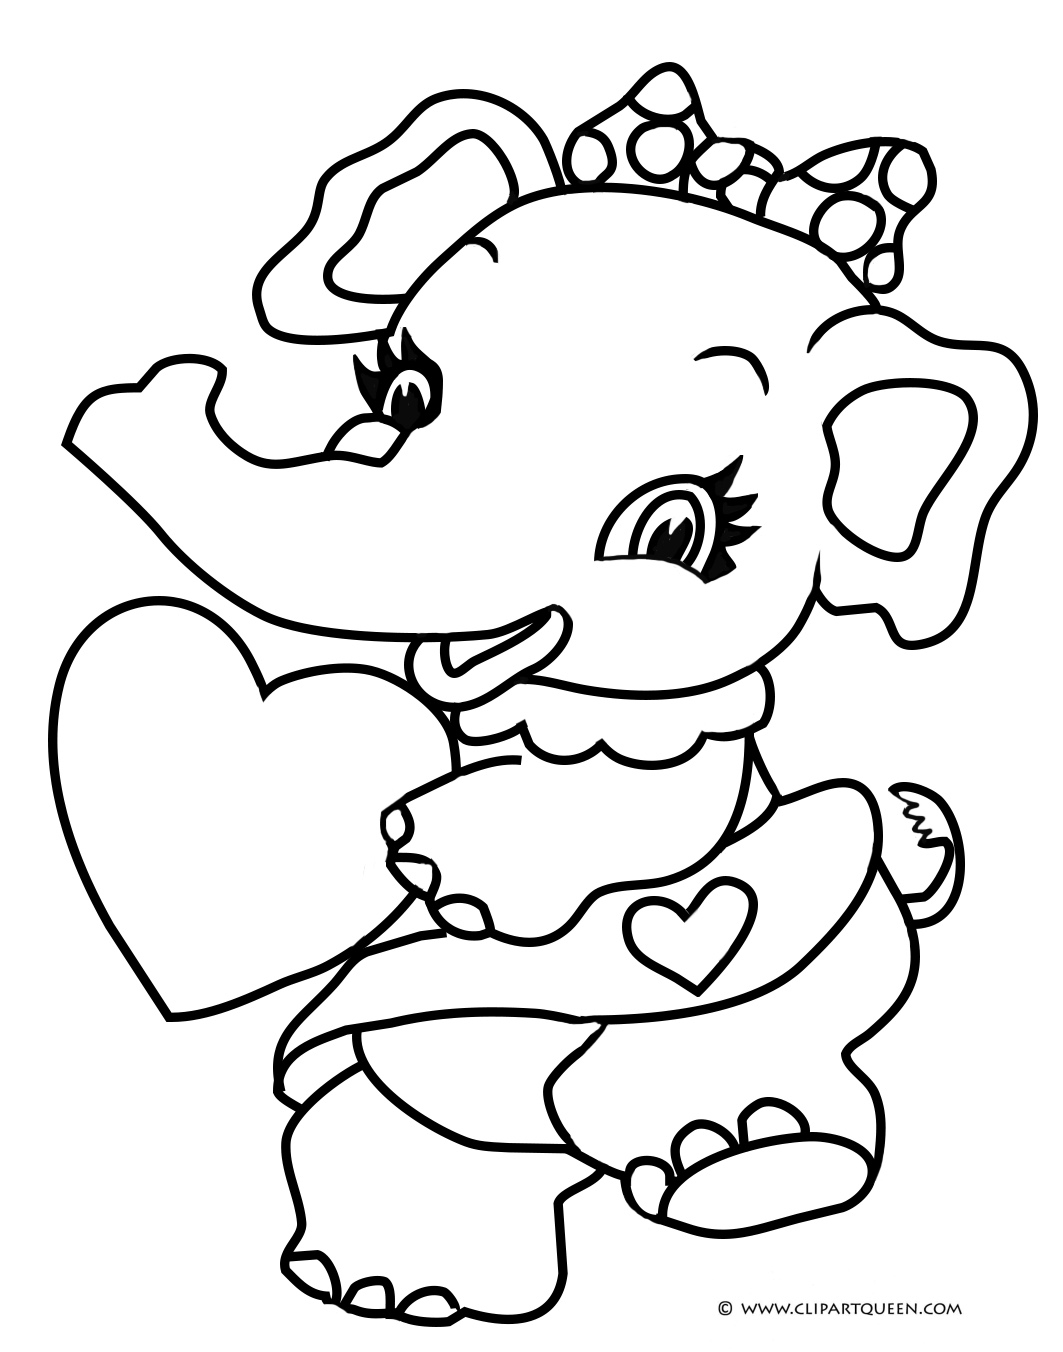 1063x1352 Valentine's Day Coloring Pages